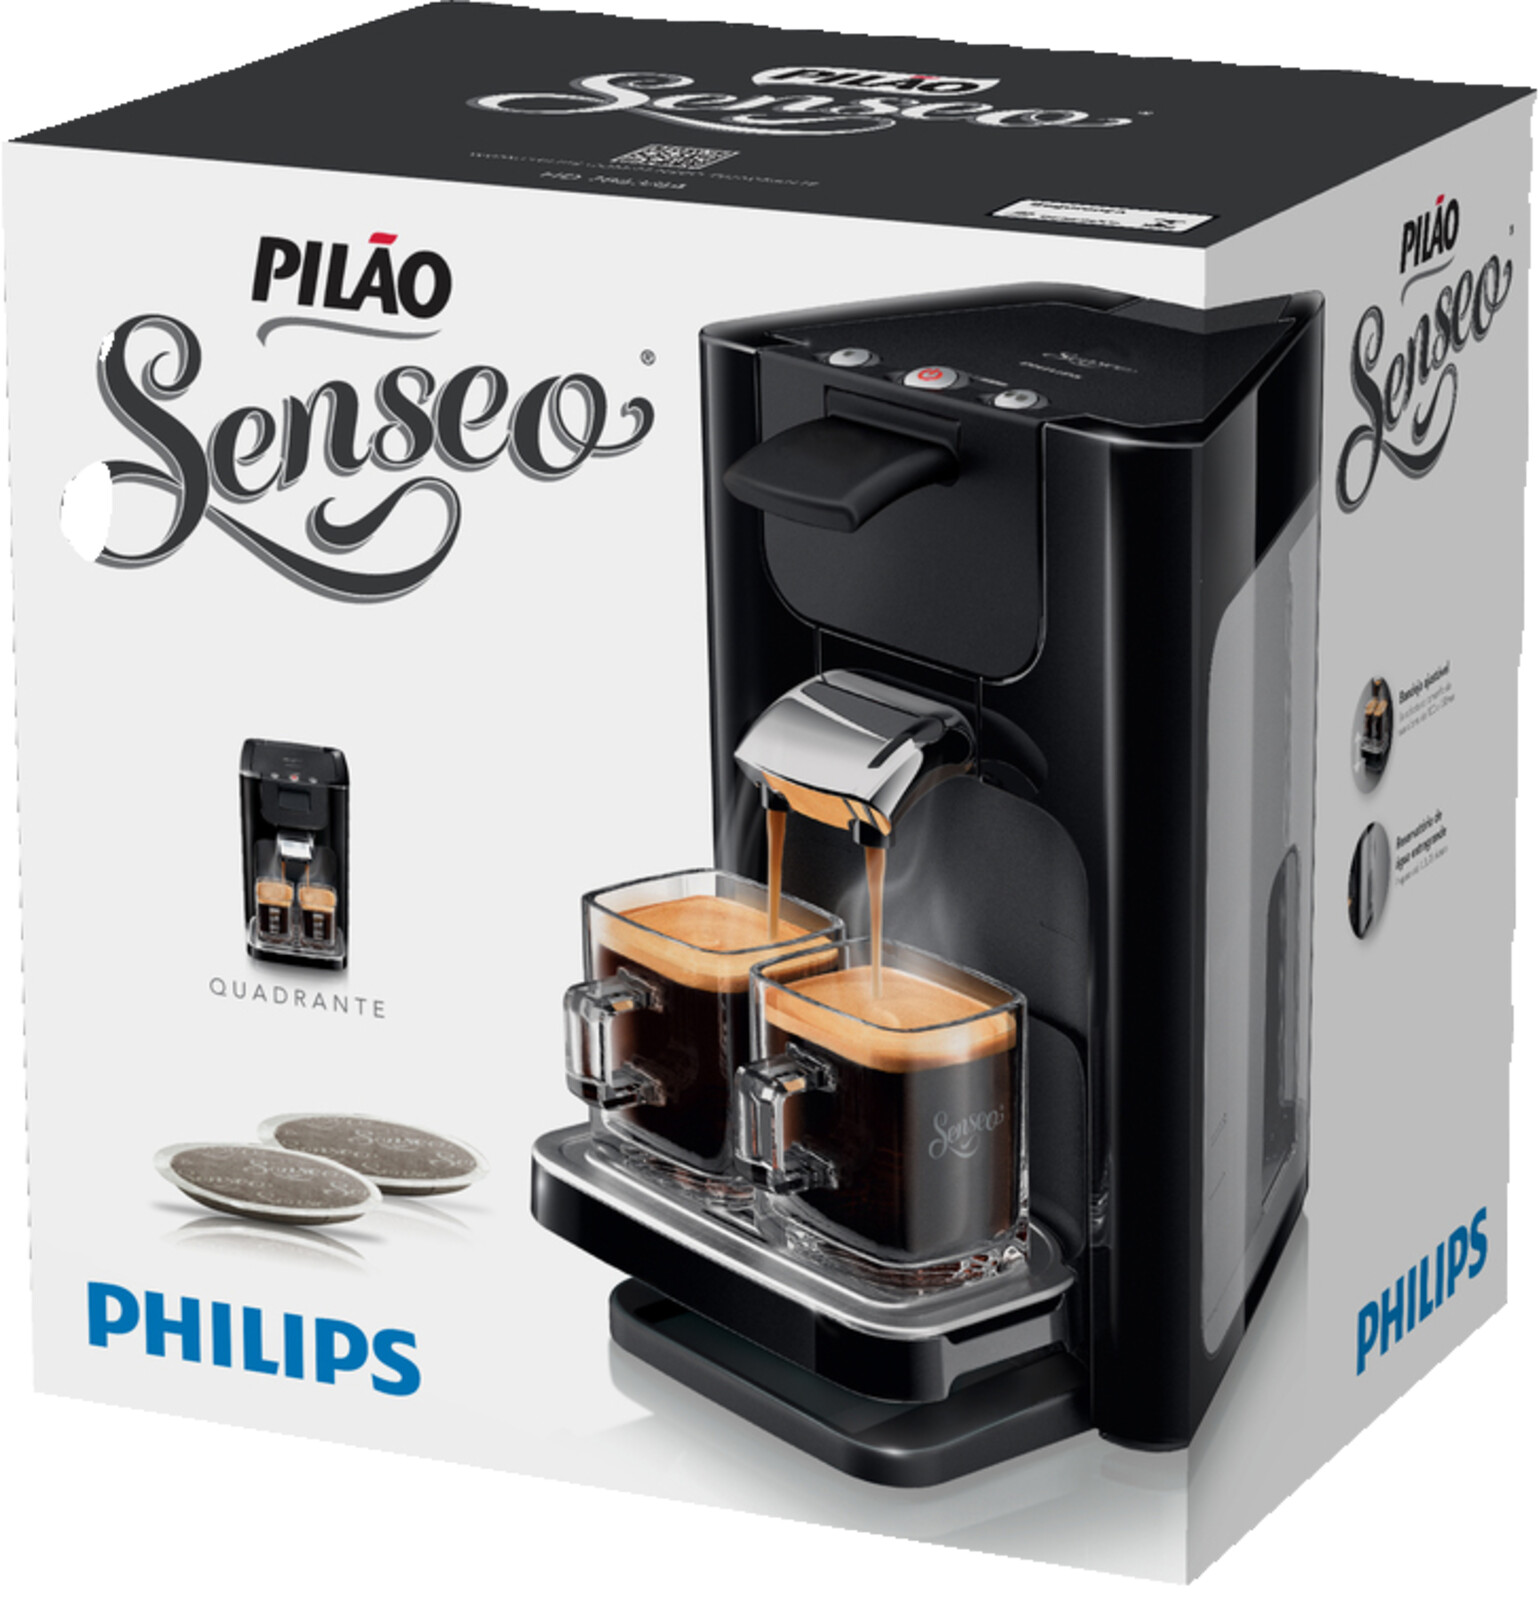 philips senseo quadrante hd7863 60 padmaschine 1 2 liter schwarz ebay. Black Bedroom Furniture Sets. Home Design Ideas